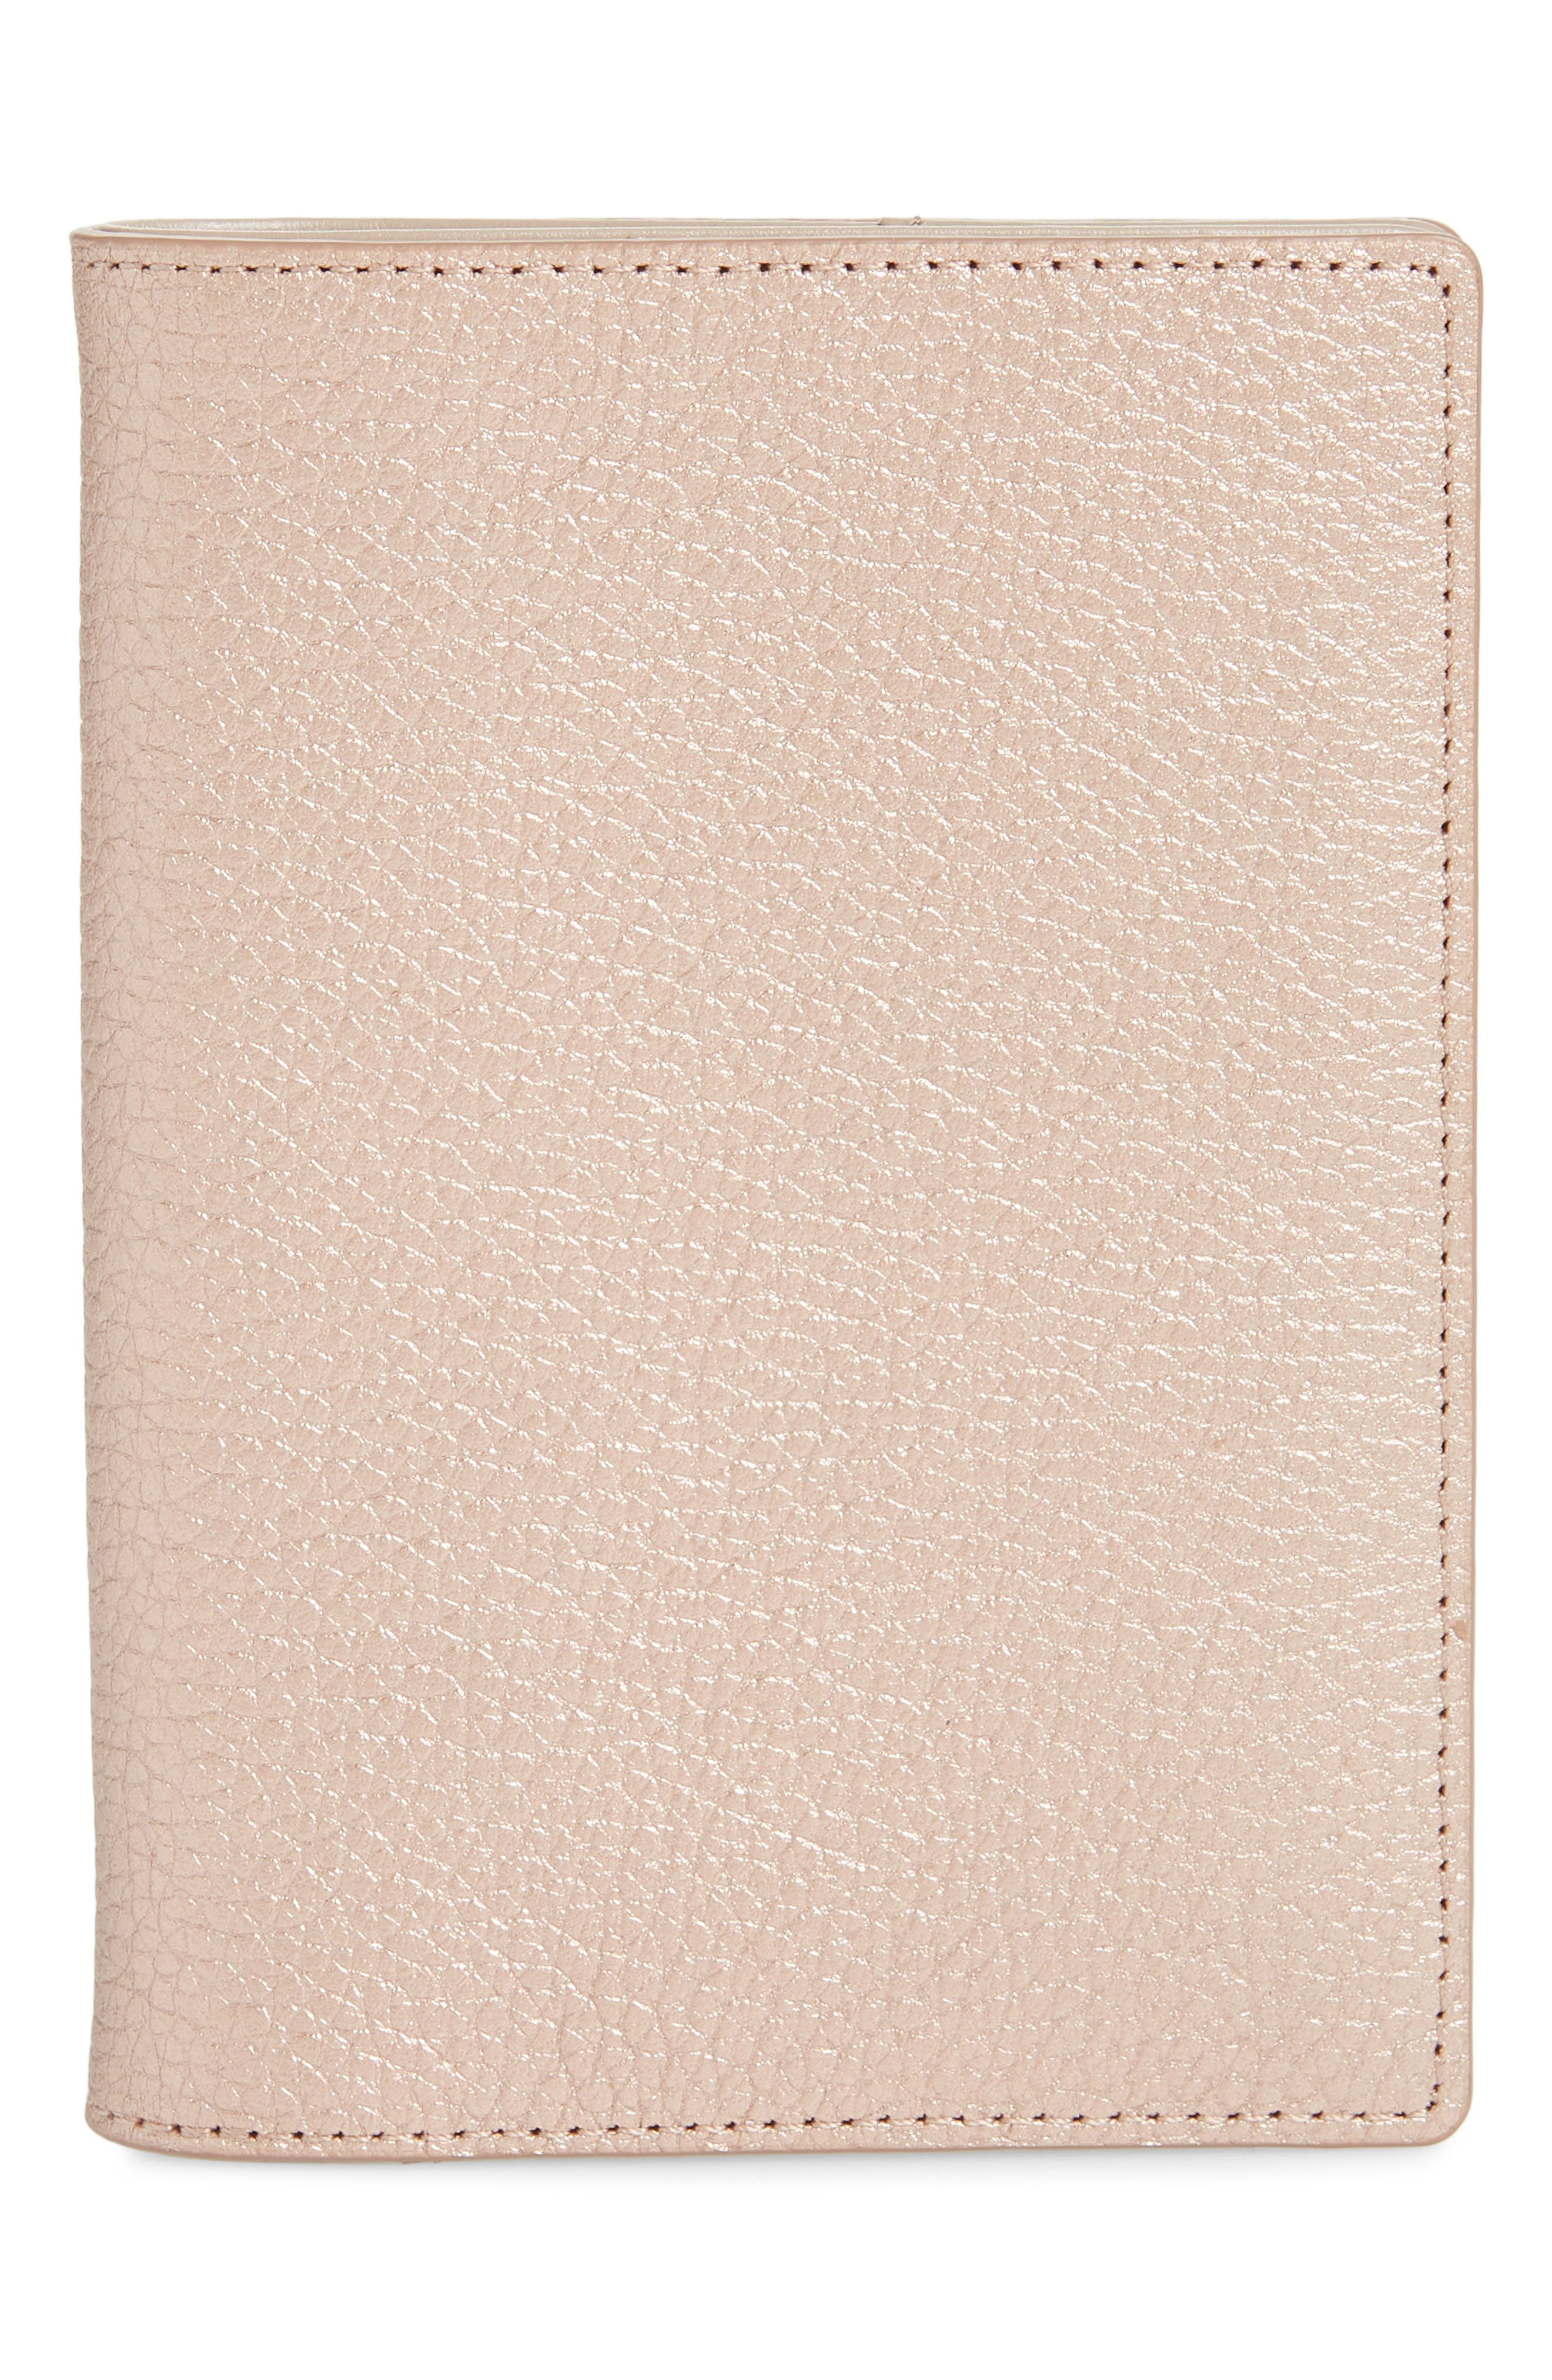 Leather Passport Case,                         Main,                         color, ROSE GOLD